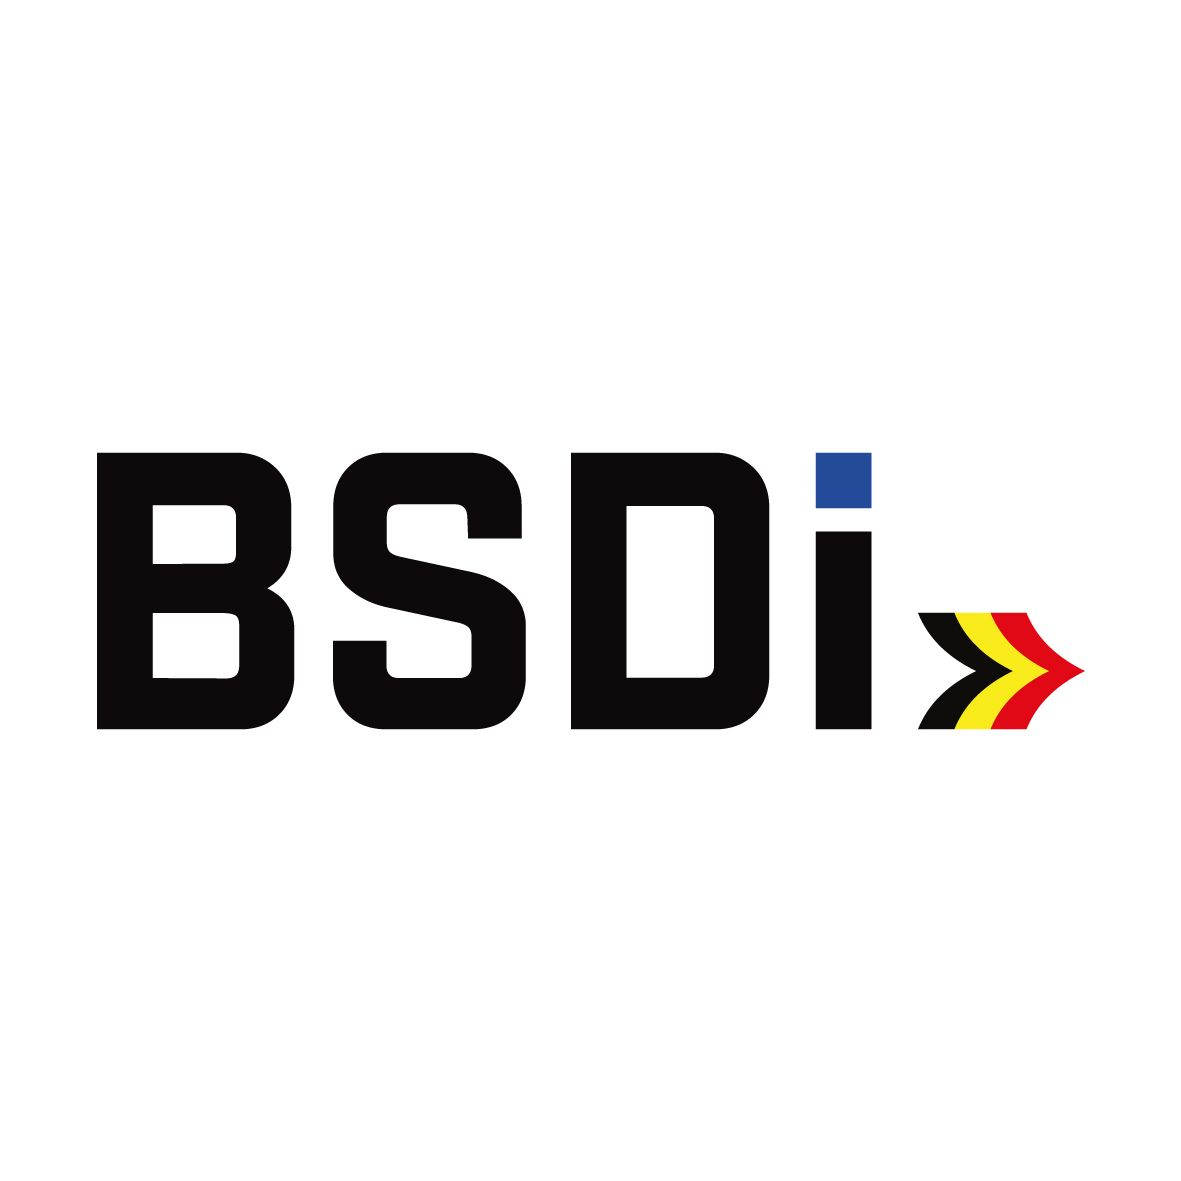 BSDI (Belgian Security and Defence Industry)